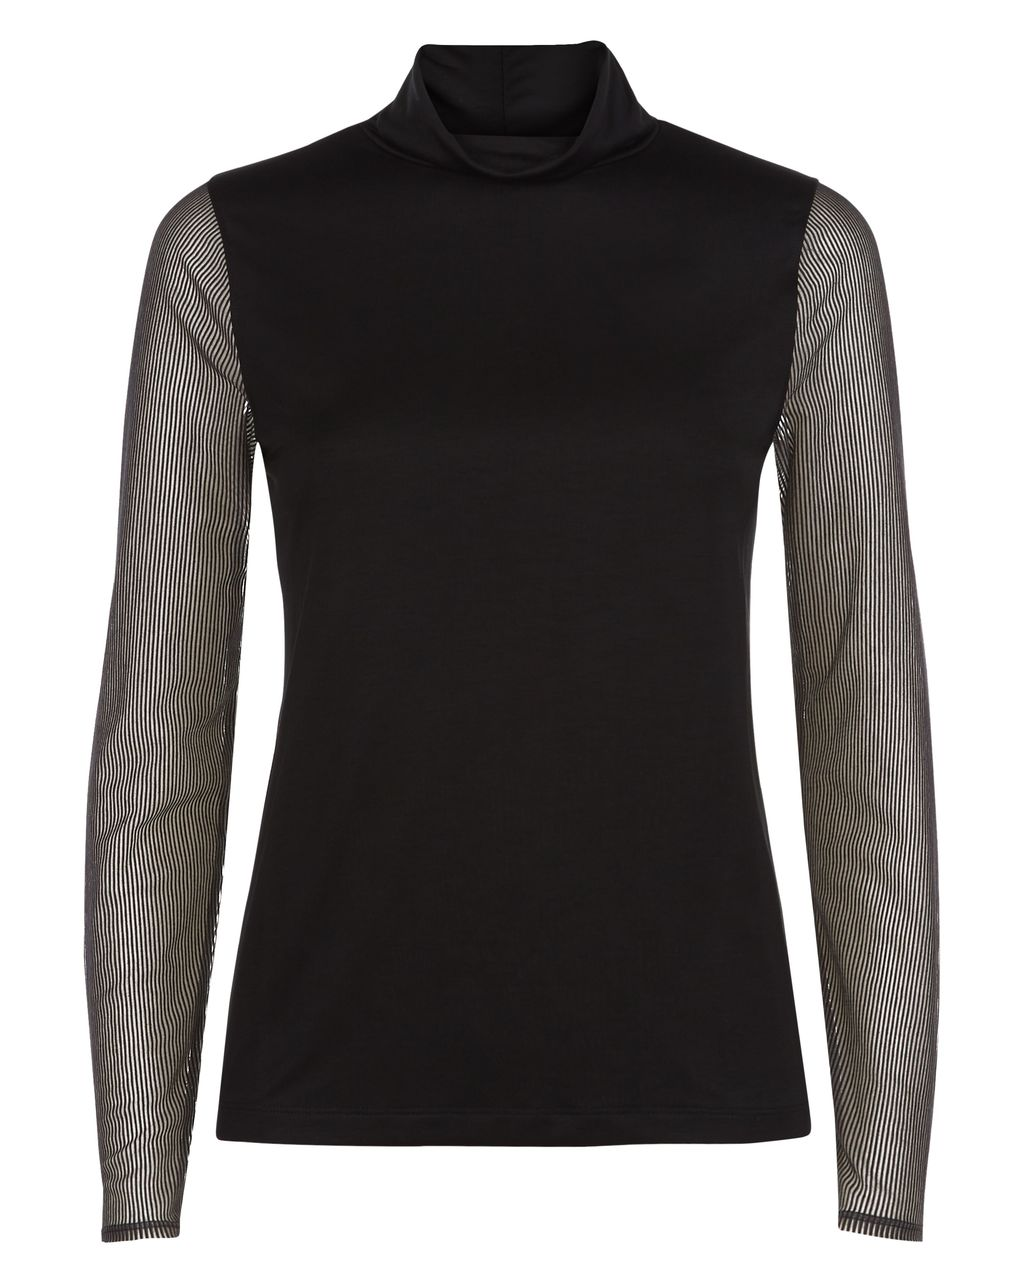 Sheer Striped Sleeved Top, Black - pattern: plain; neckline: roll neck; predominant colour: black; occasions: casual, creative work; length: standard; style: top; fibres: cotton - mix; fit: body skimming; sleeve length: long sleeve; sleeve style: standard; texture group: sheer fabrics/chiffon/organza etc.; pattern type: fabric; wardrobe: basic; season: a/w 2016